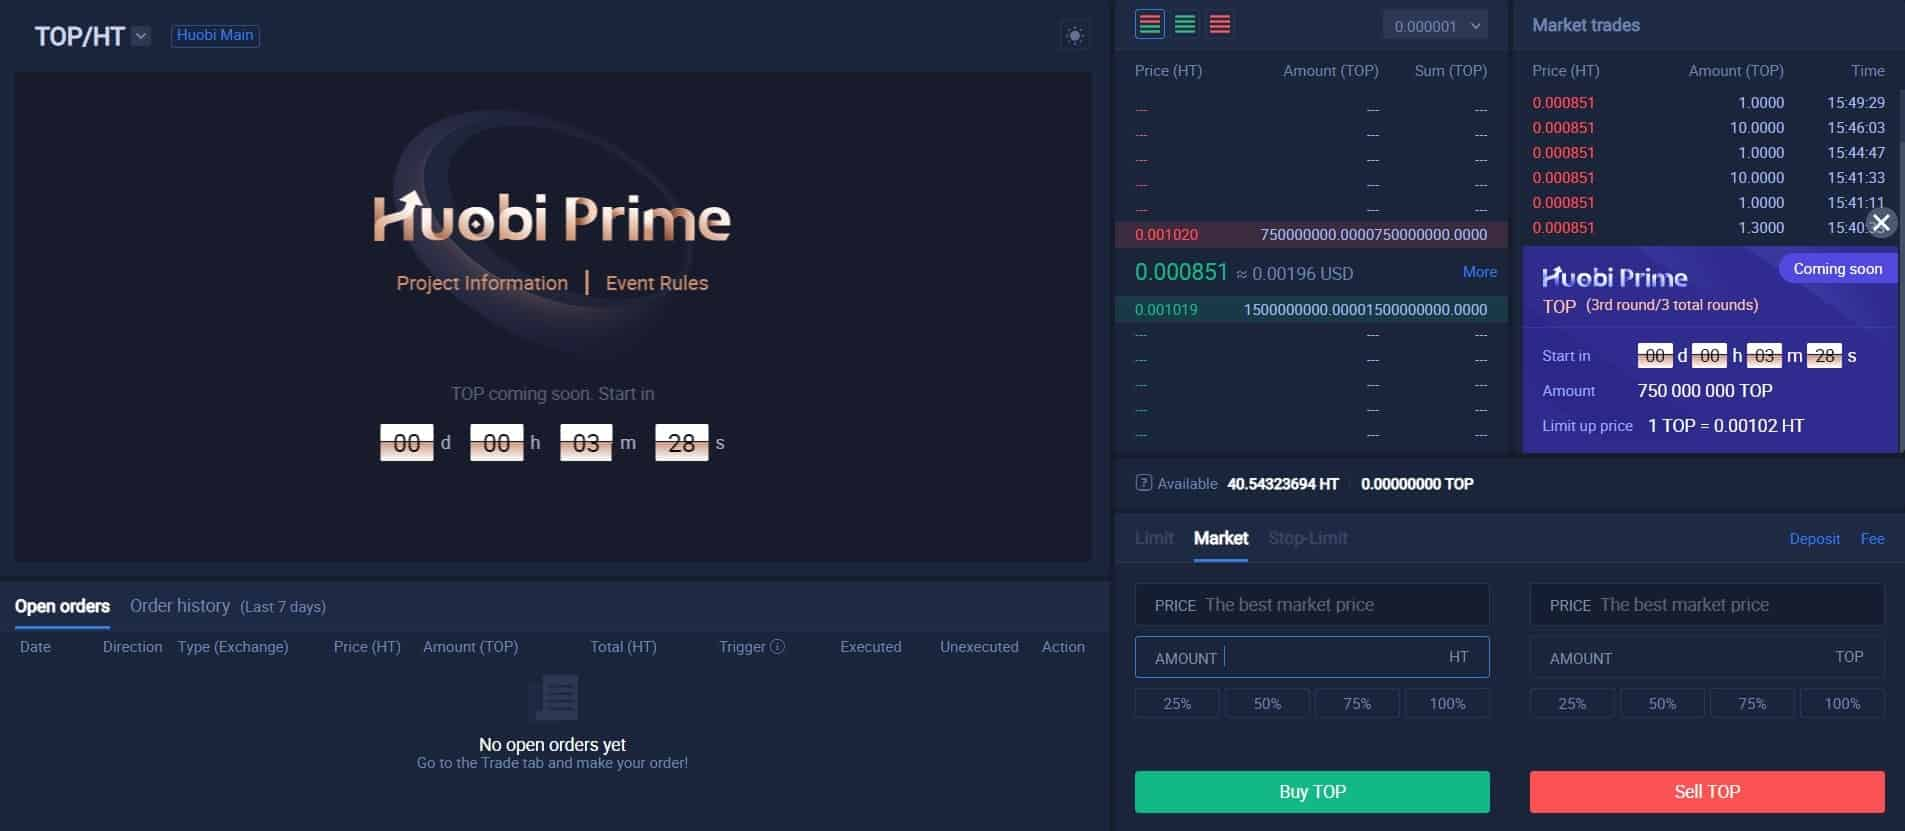 Huobi Prime Exchange